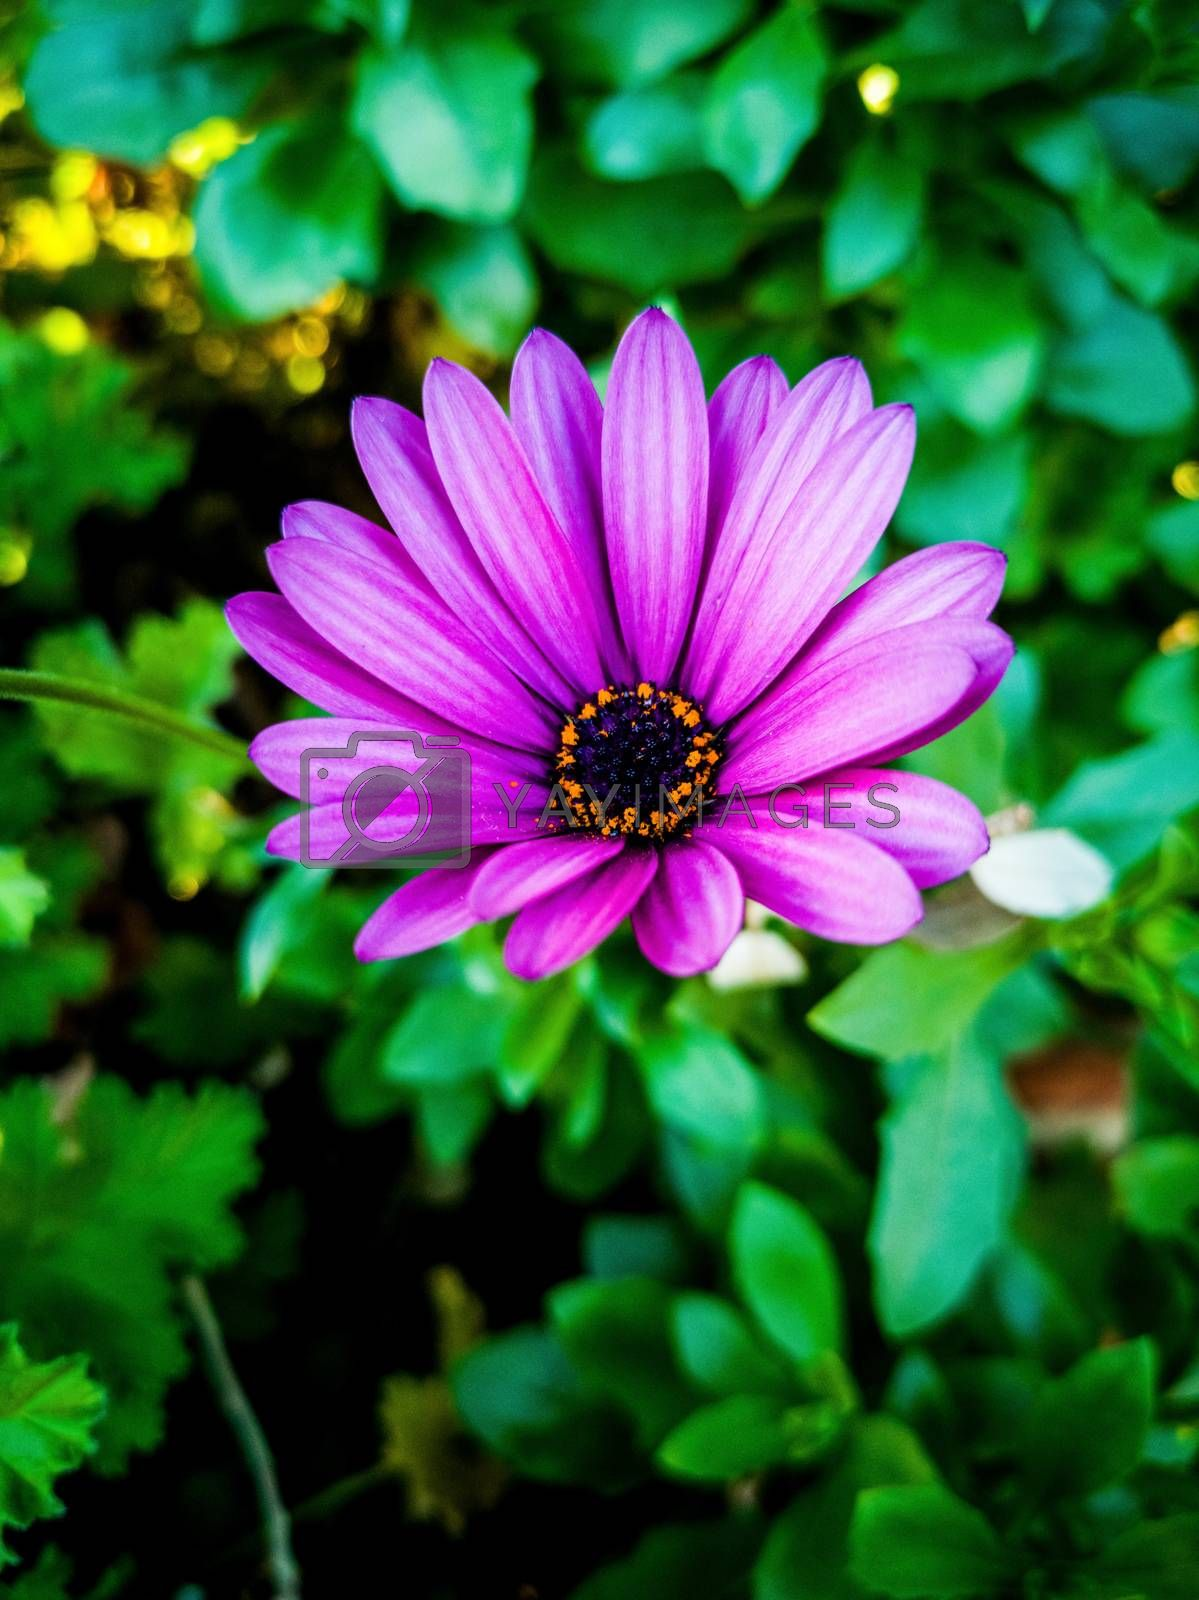 Purple daisy with purple and yellow center and green leaves background